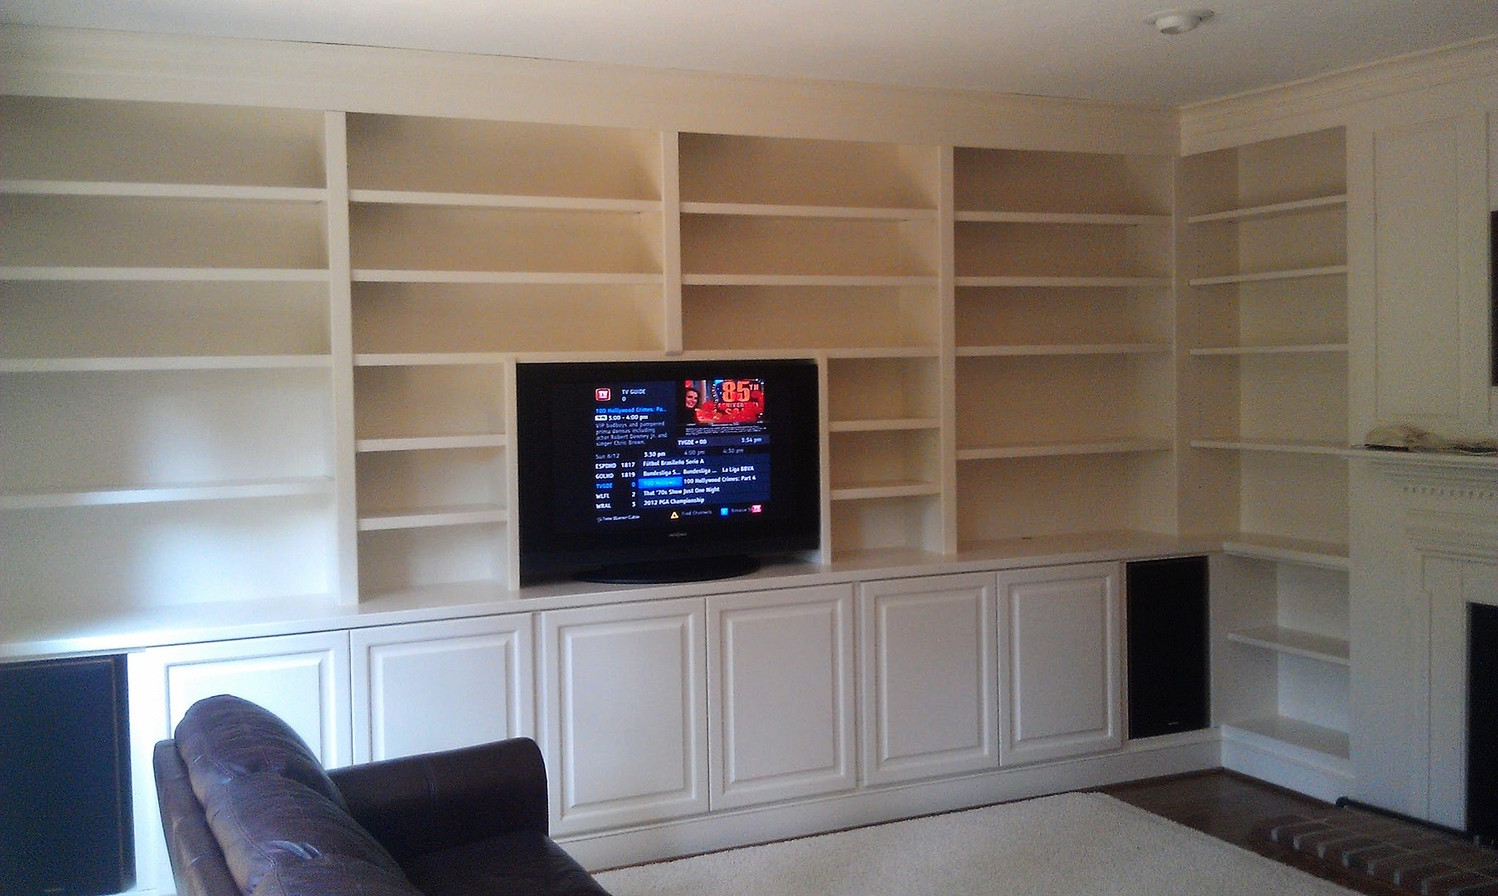 Wall to Wall Built-Ins After